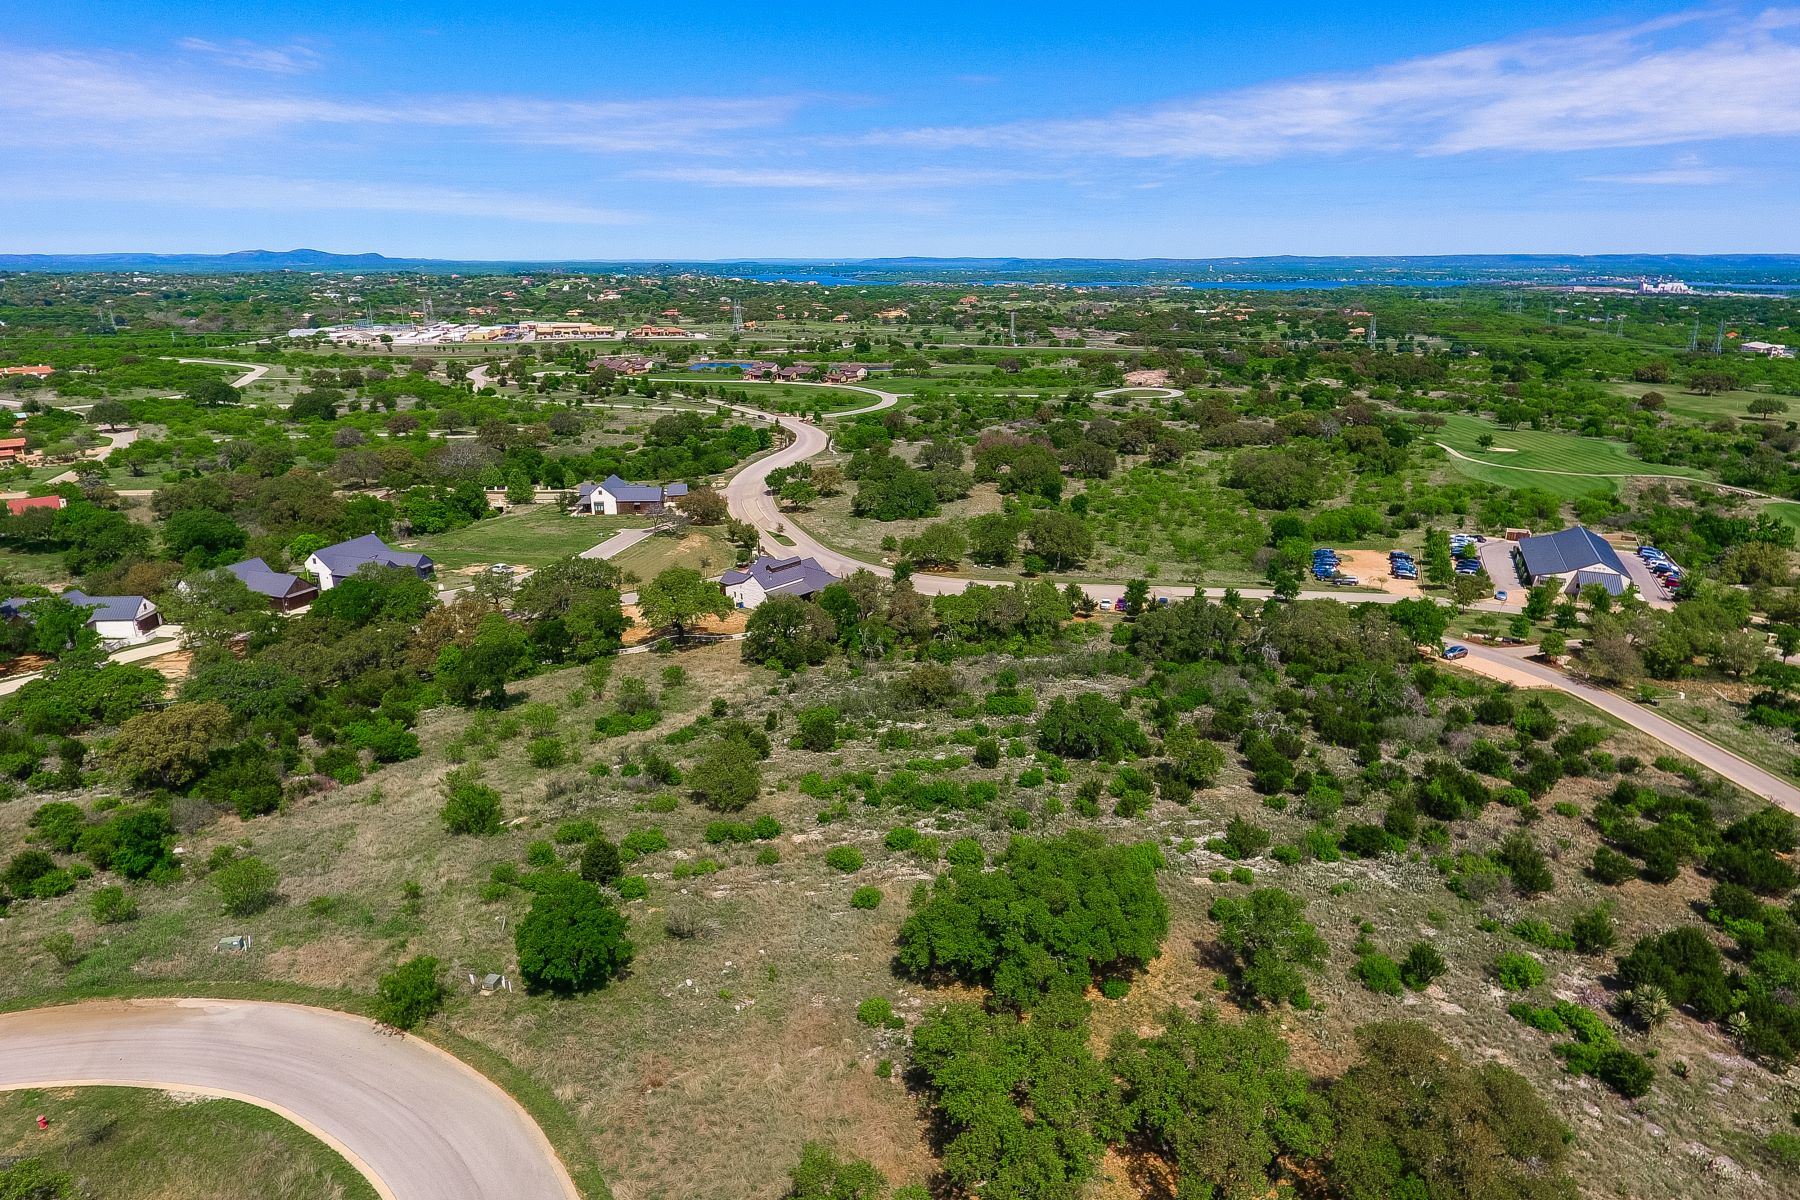 Land for Sale at Wonderful Acreage on the Northernmost Point of Summit Rock Lot 16 & 17 Blazing Star Horseshoe Bay, Texas 78657 United States